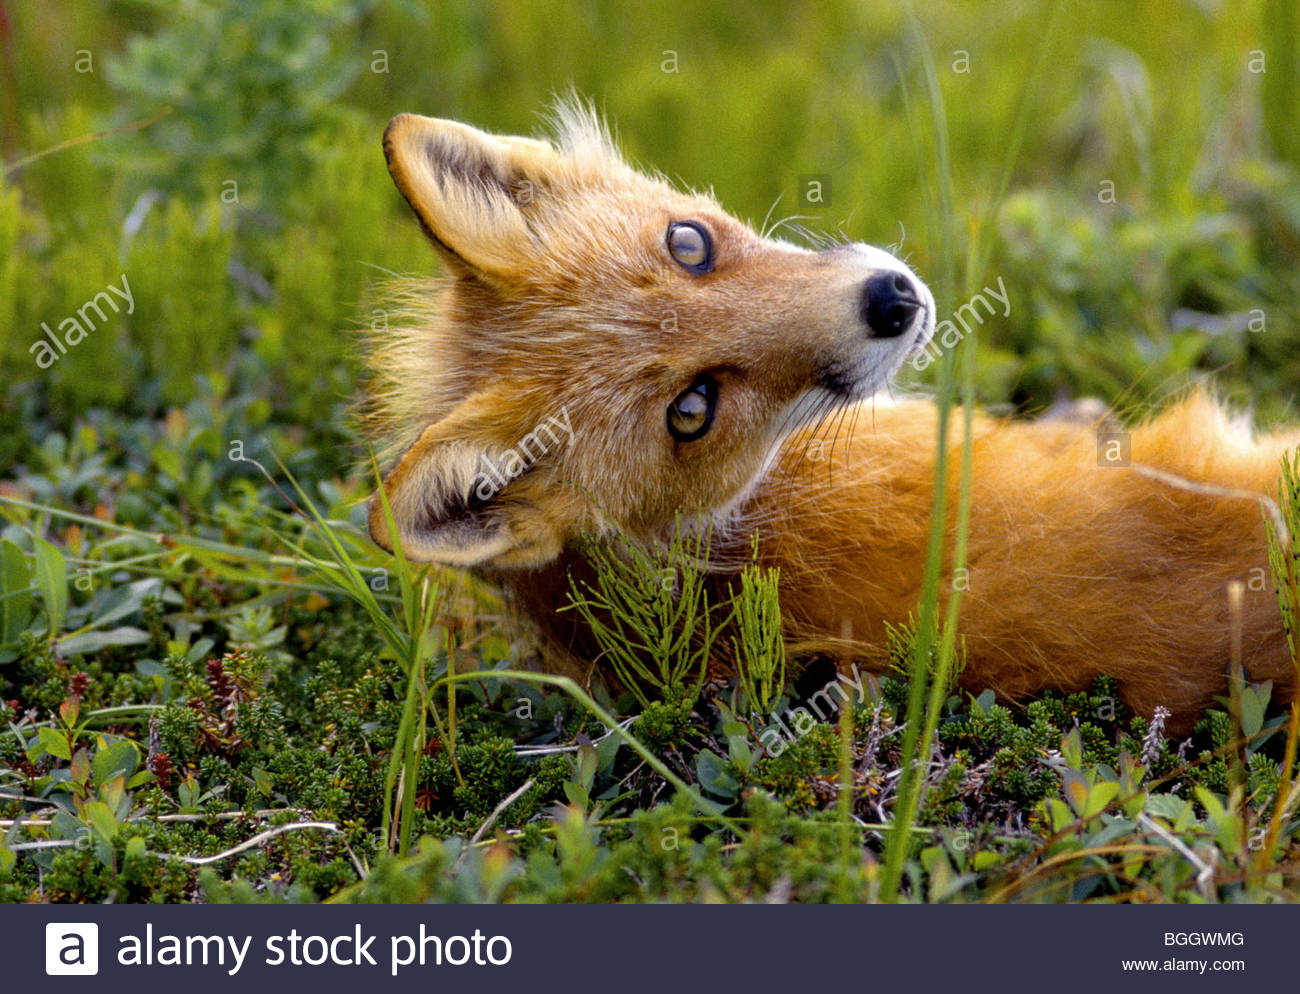 Alaska. Red Fox turns to gaze at curious photographer from its grassy knoll in the Aleutian Islands. - Stock Image